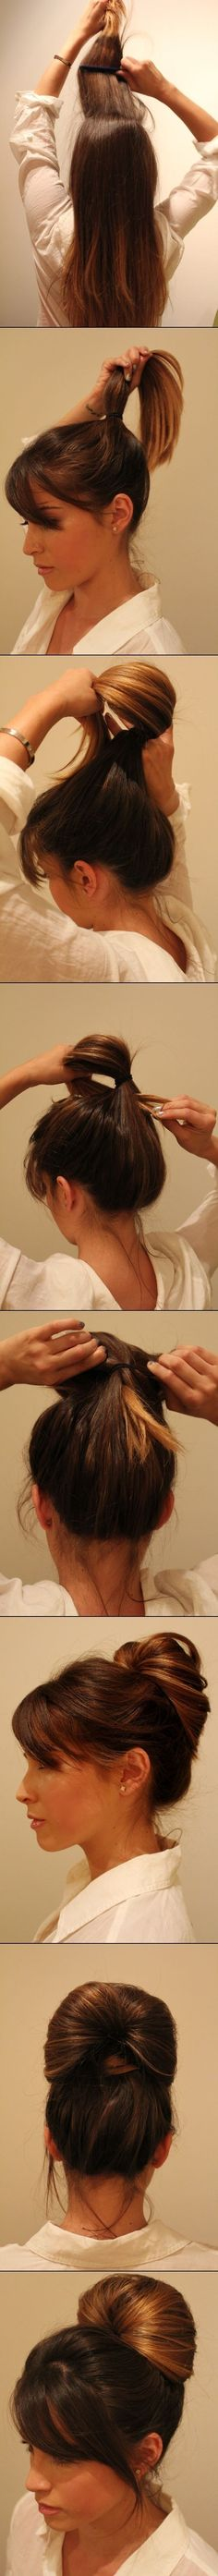 This sleek do only takes a minute and looks professional enough for work. | Hairstyling Hacks